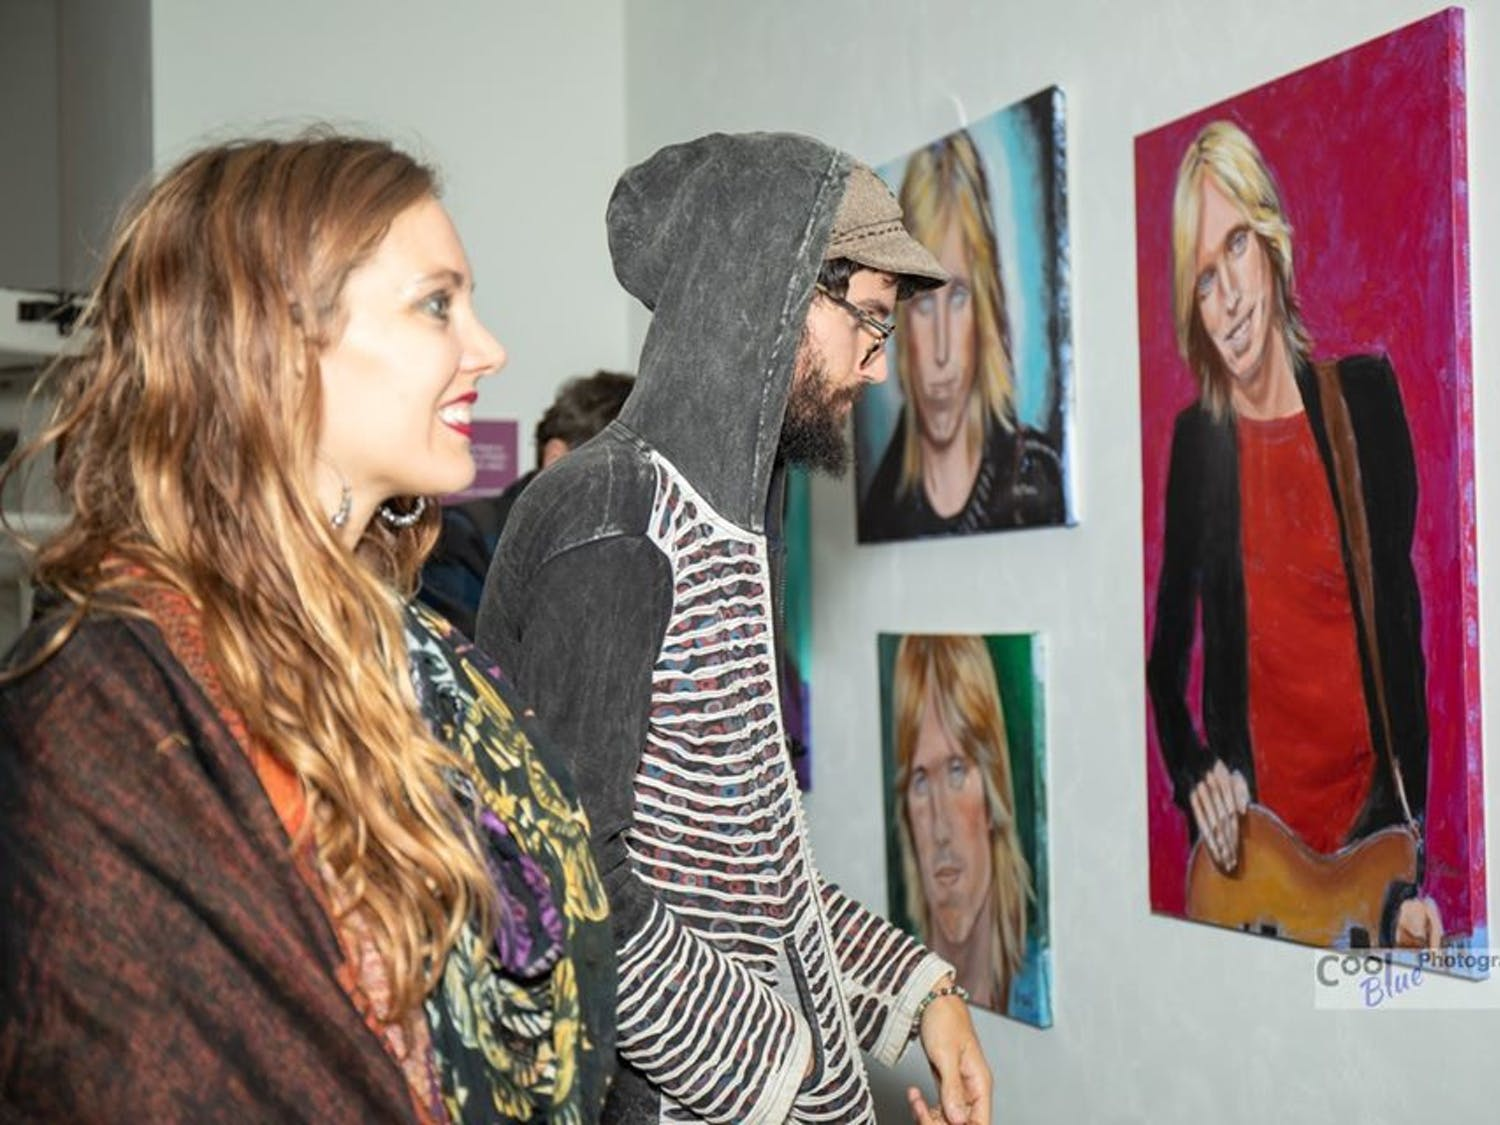 Two attendees at Friday night's reception for the Matheson's new Tom Petty exhibit look at paintings of the musician created by local artist Barbara Tench.